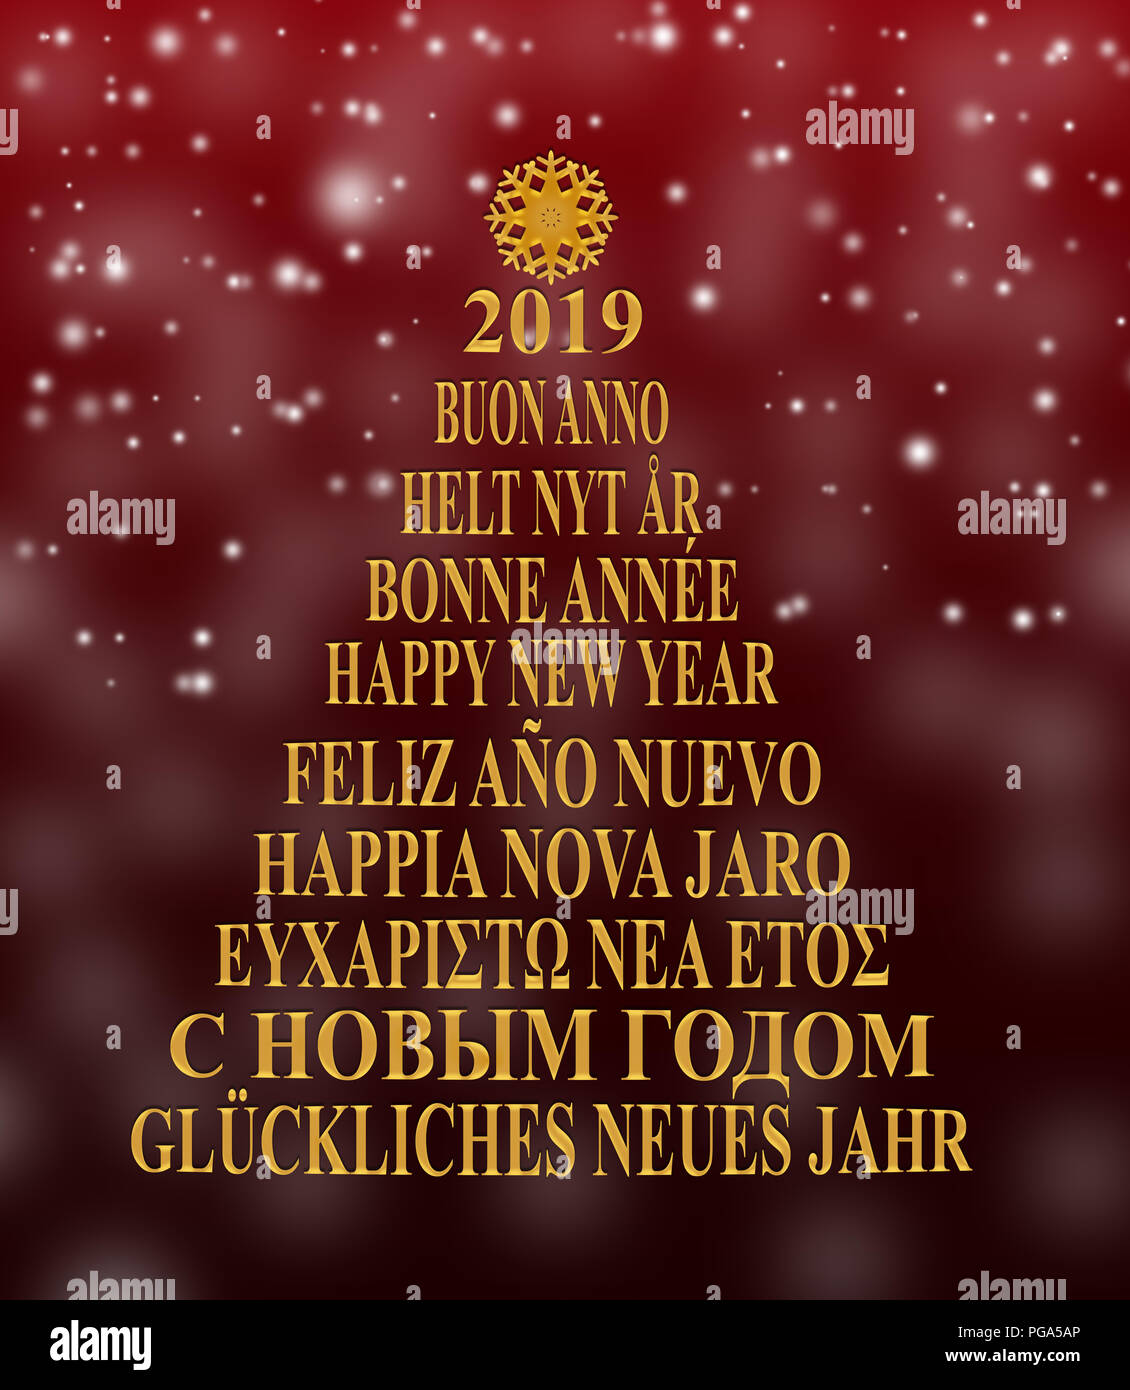 silhouette of the christmas tree from new year greetings in different languages